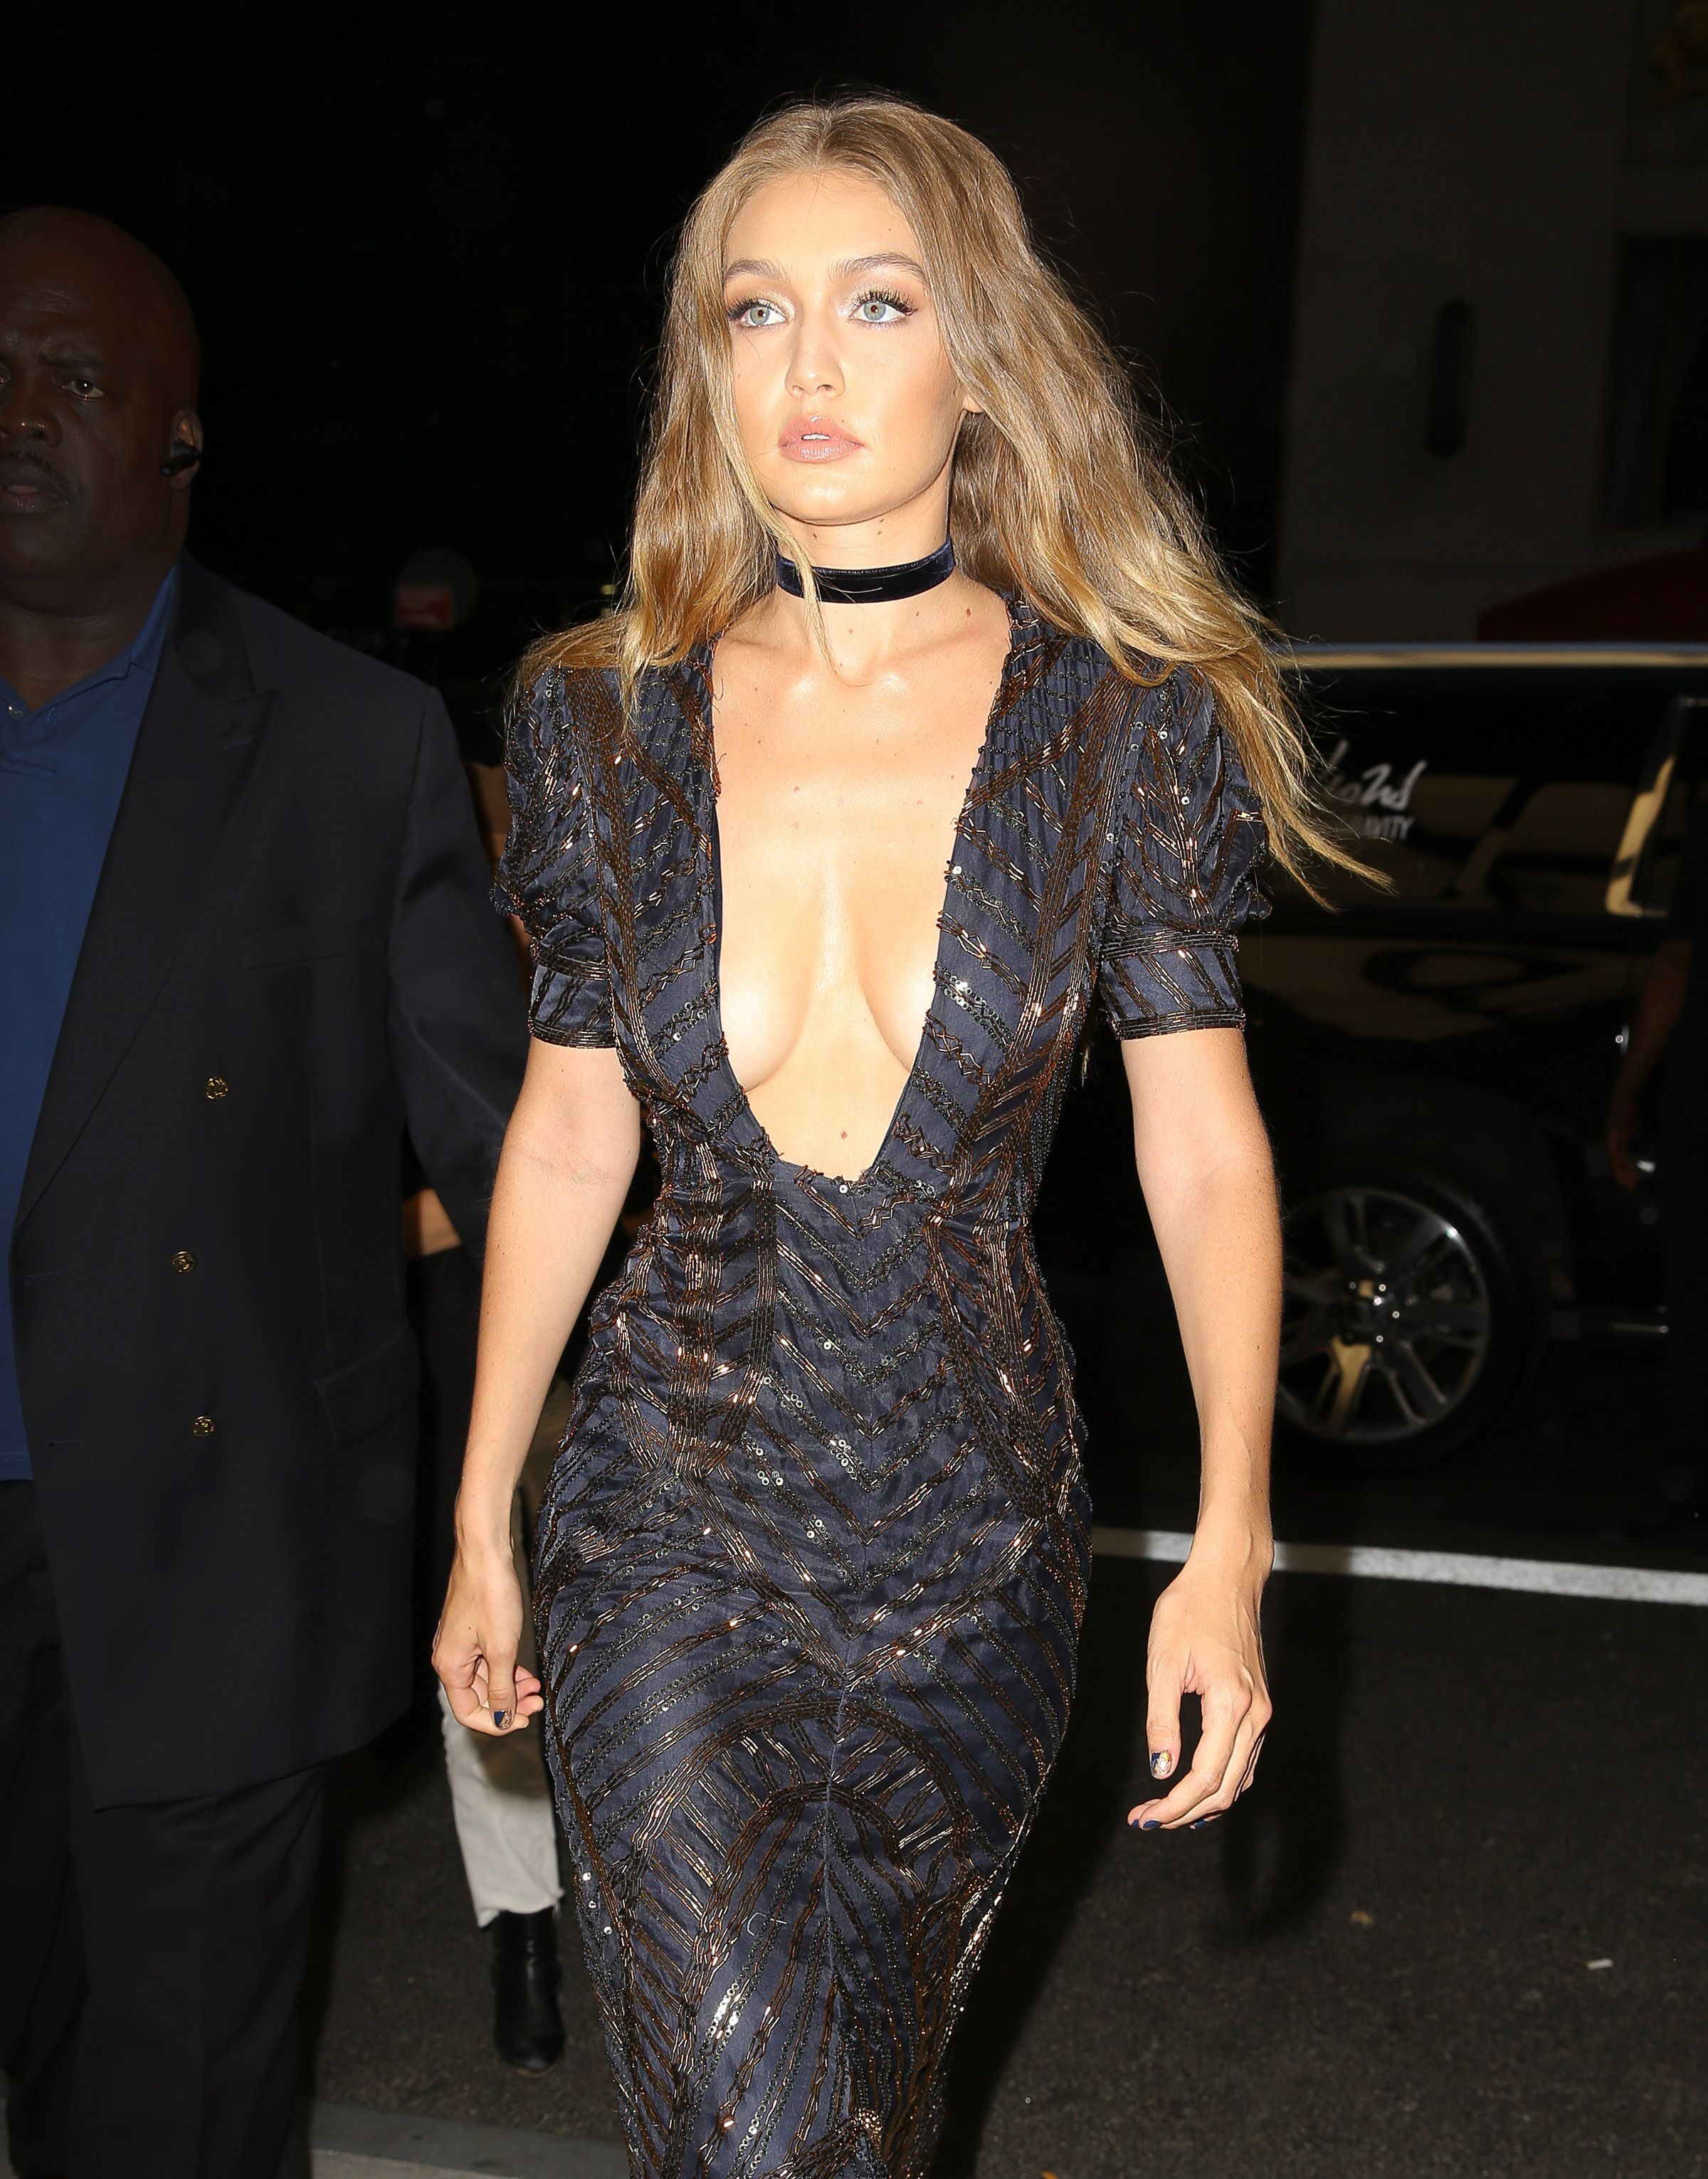 Gigi Hadid Cleavage Photo...